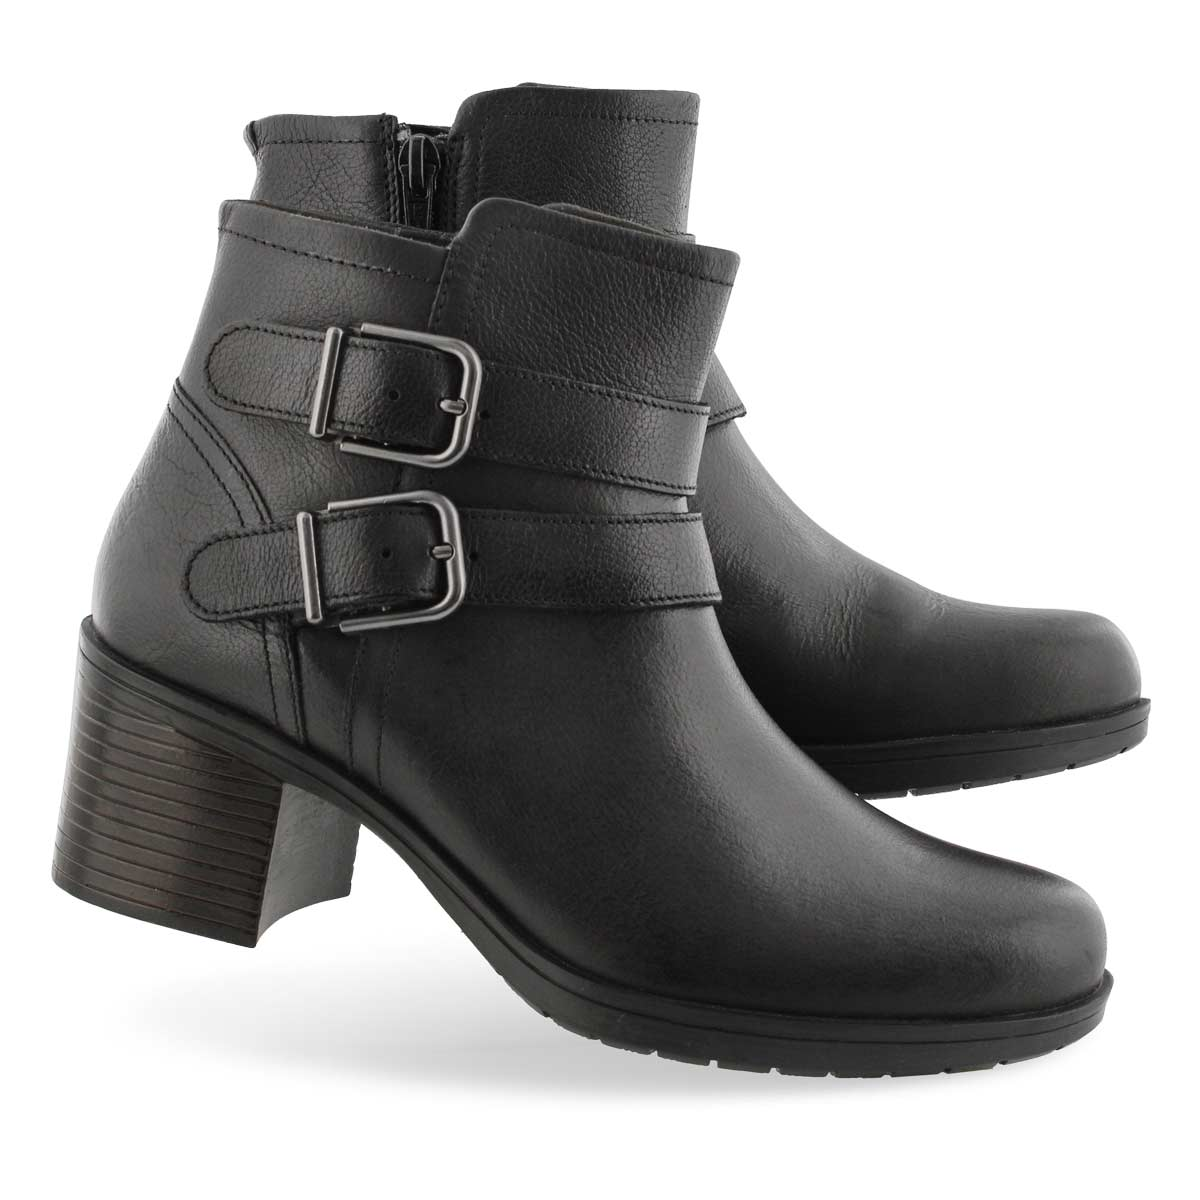 Lds Hollis Pearl black ankle boot